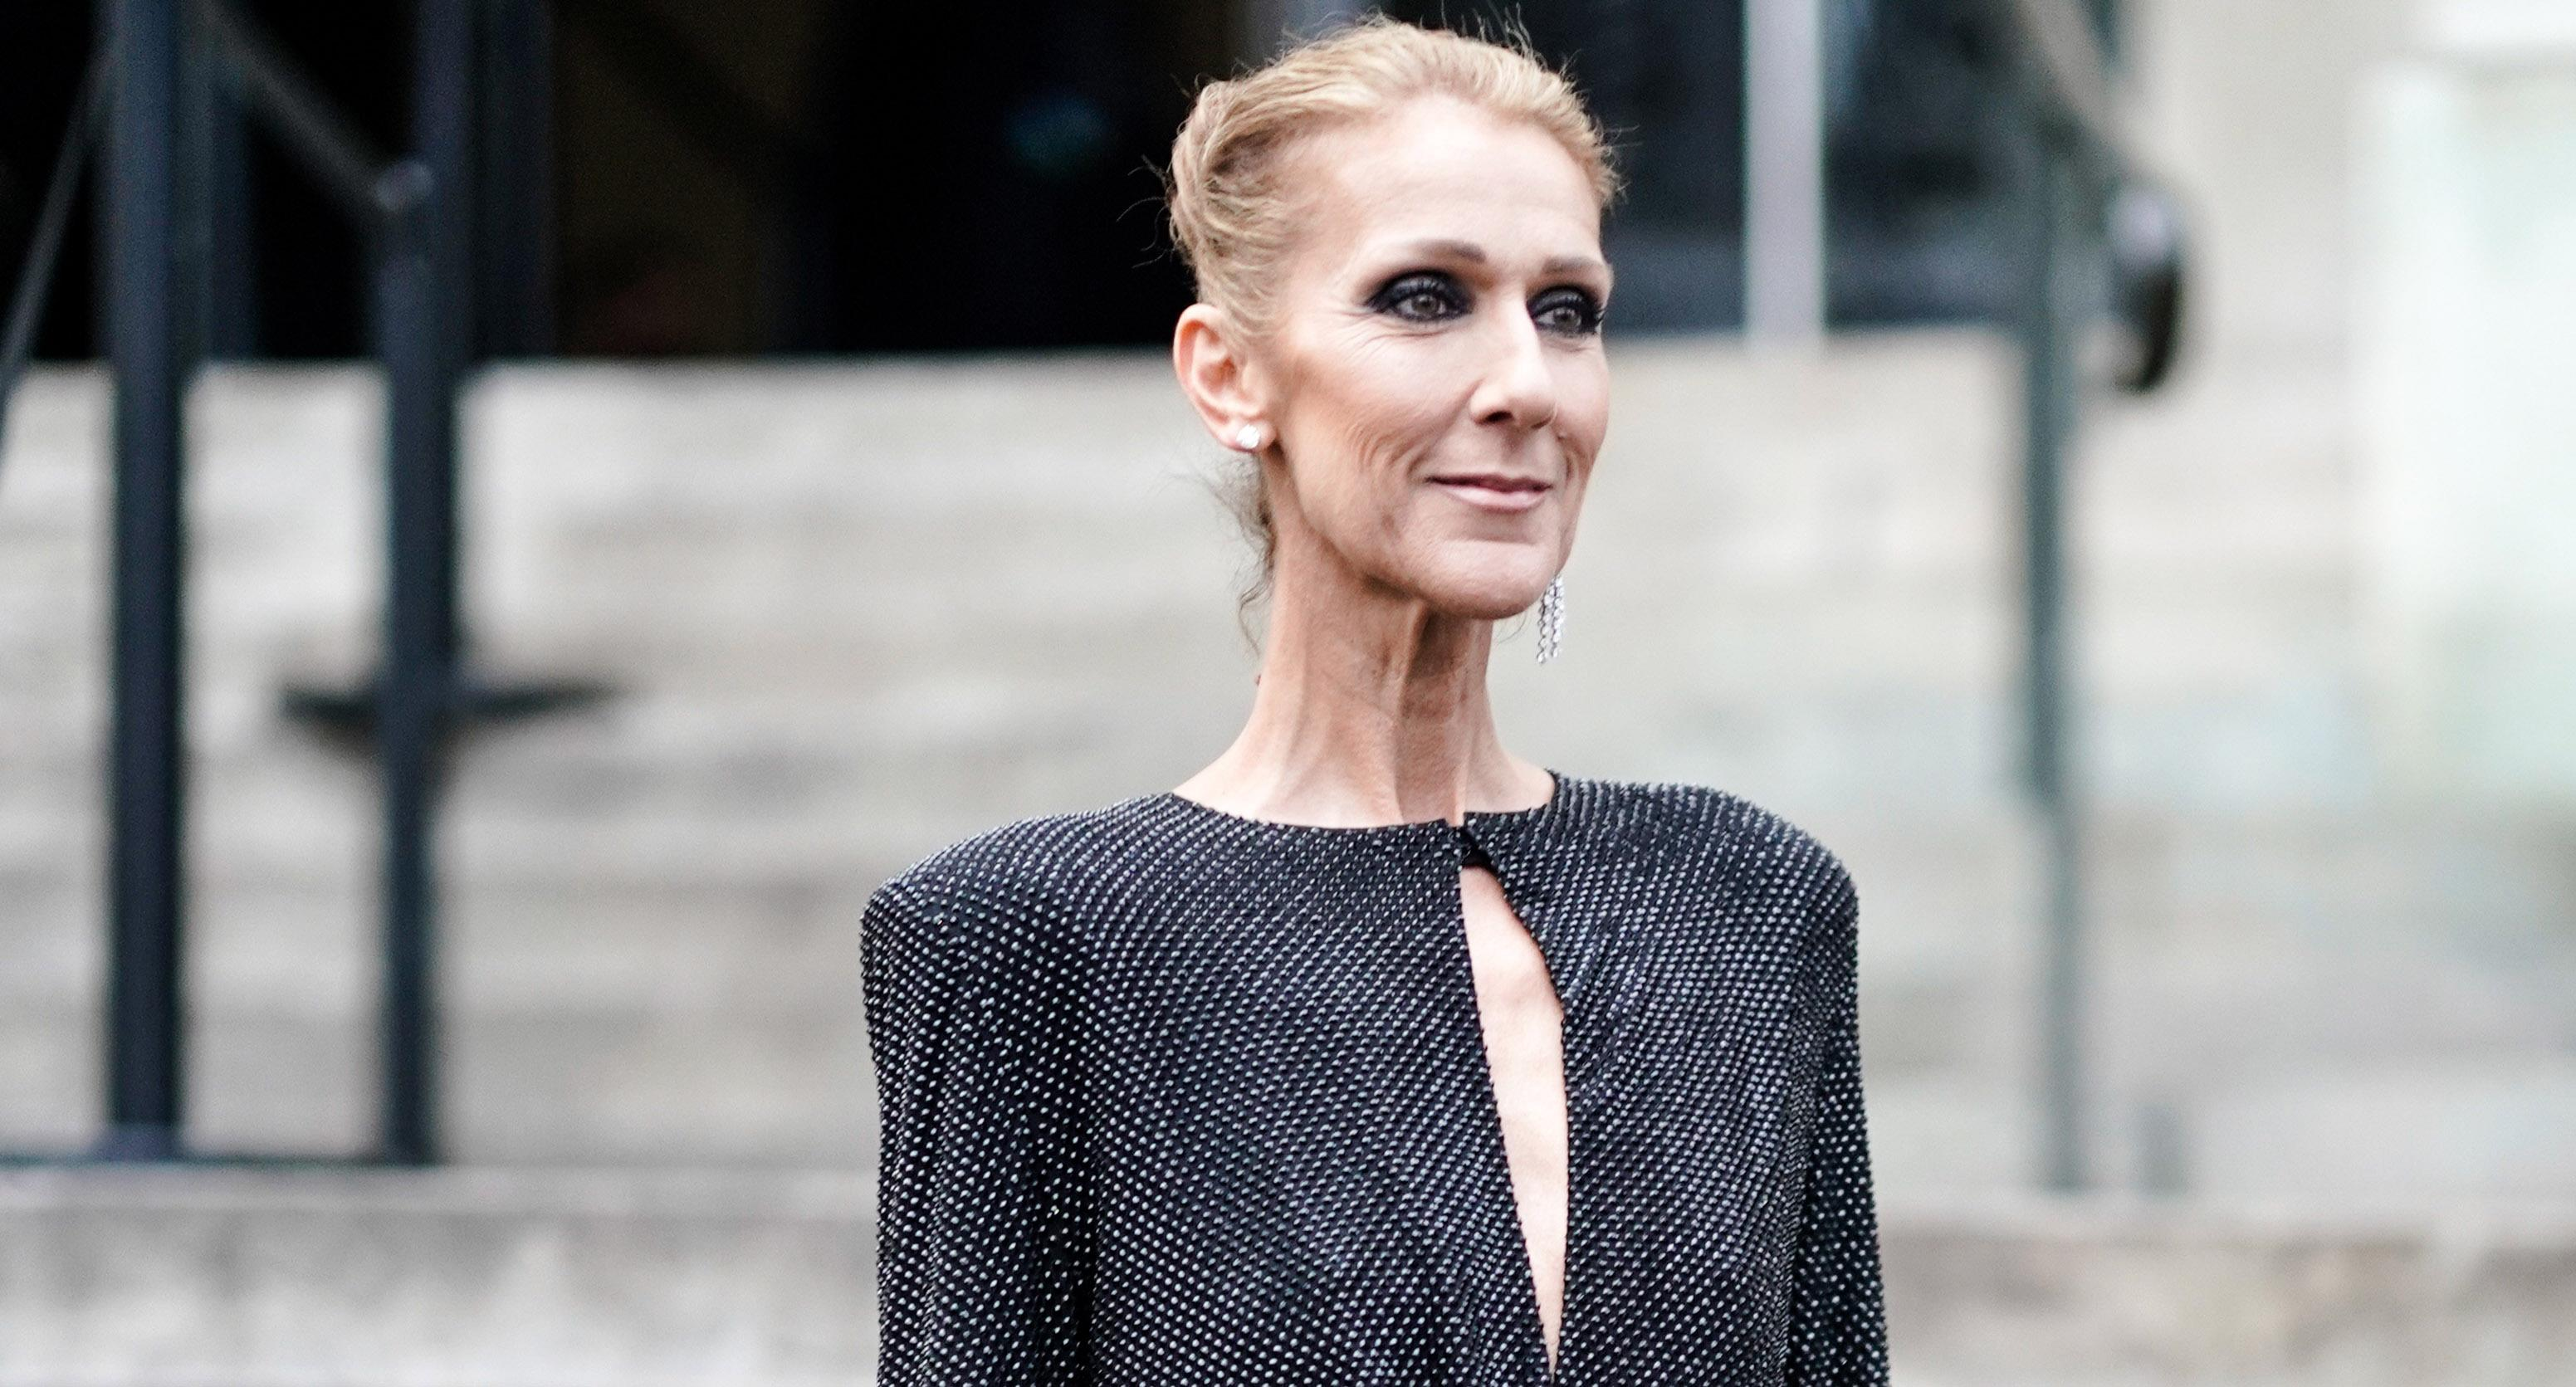 Fans concerned about Celine Dion's weight loss